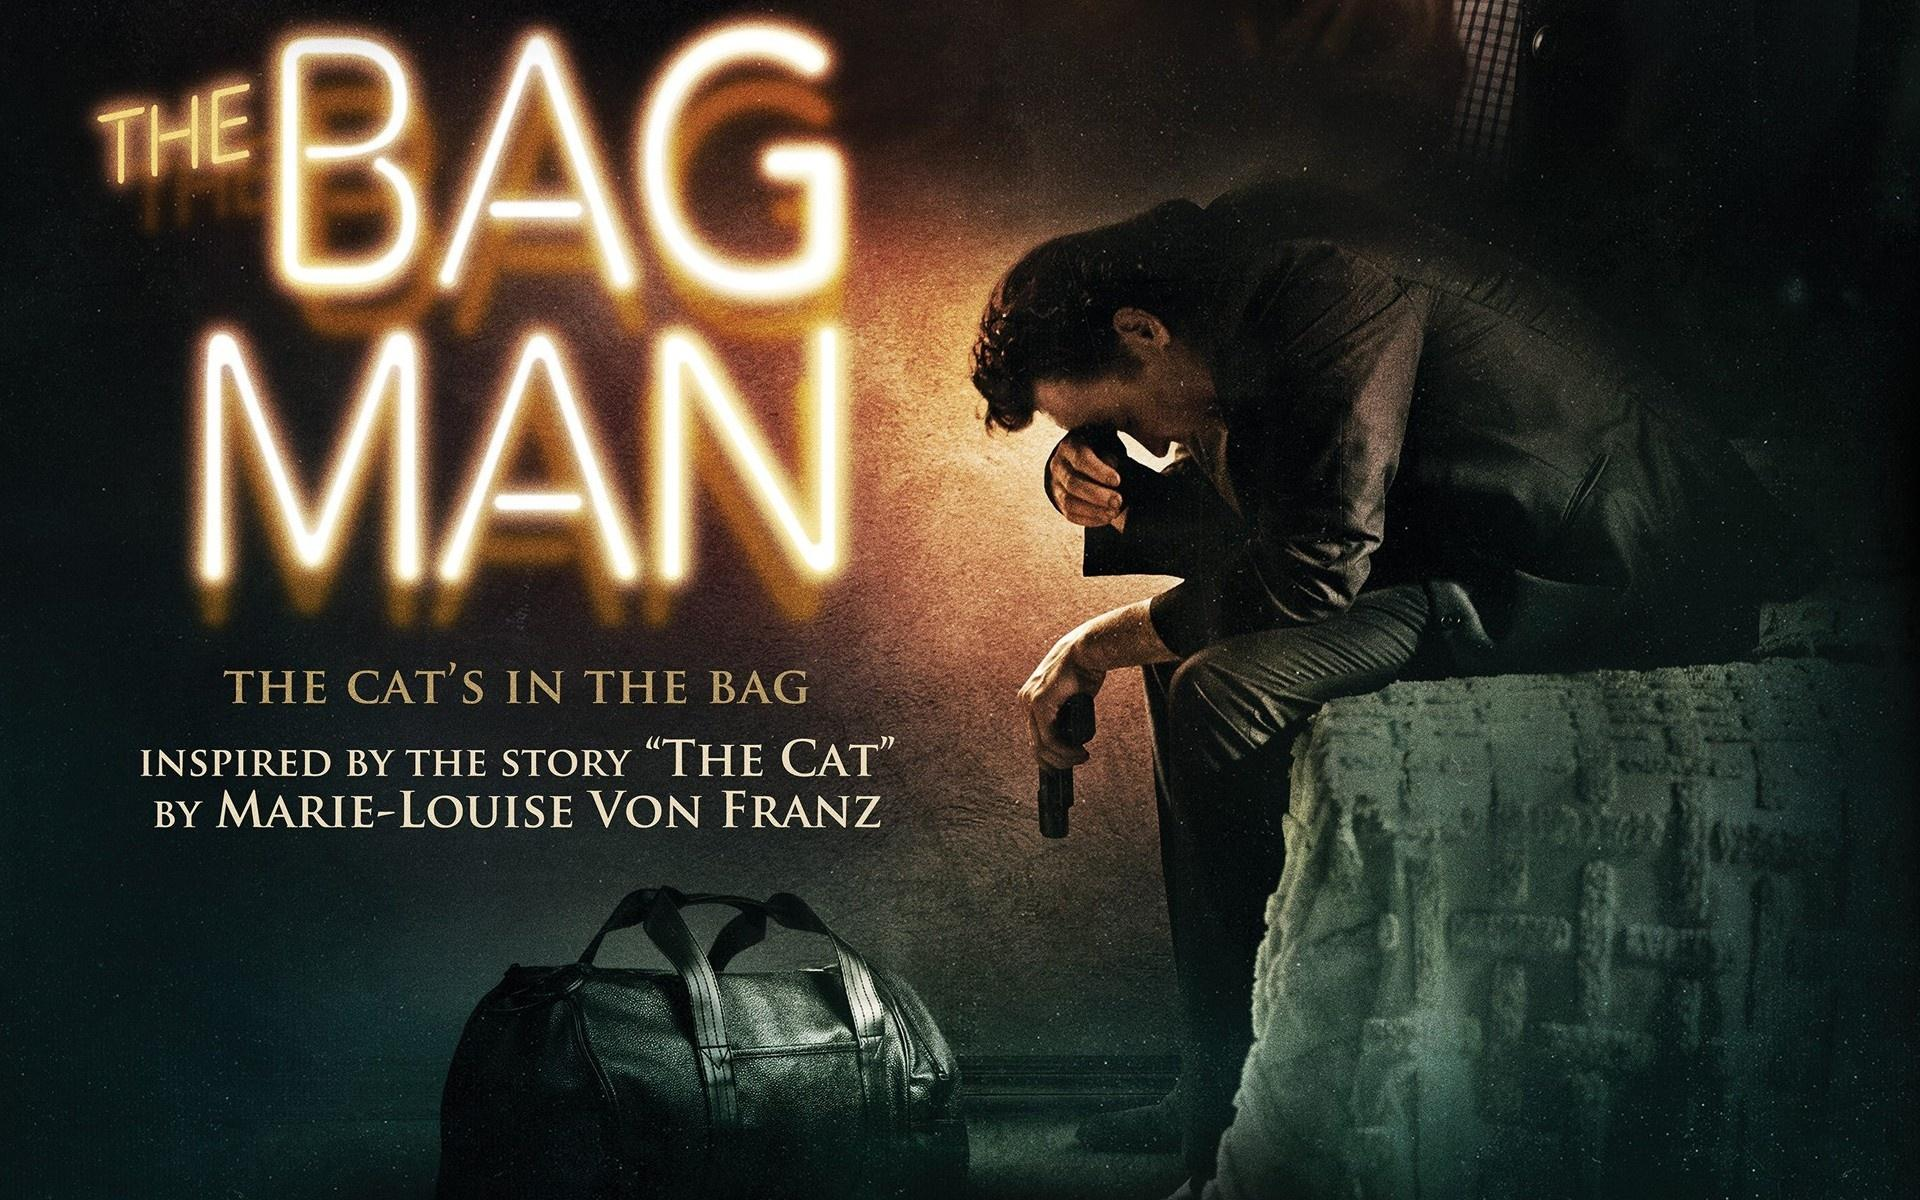 Movie Review: 'The Bag Man'